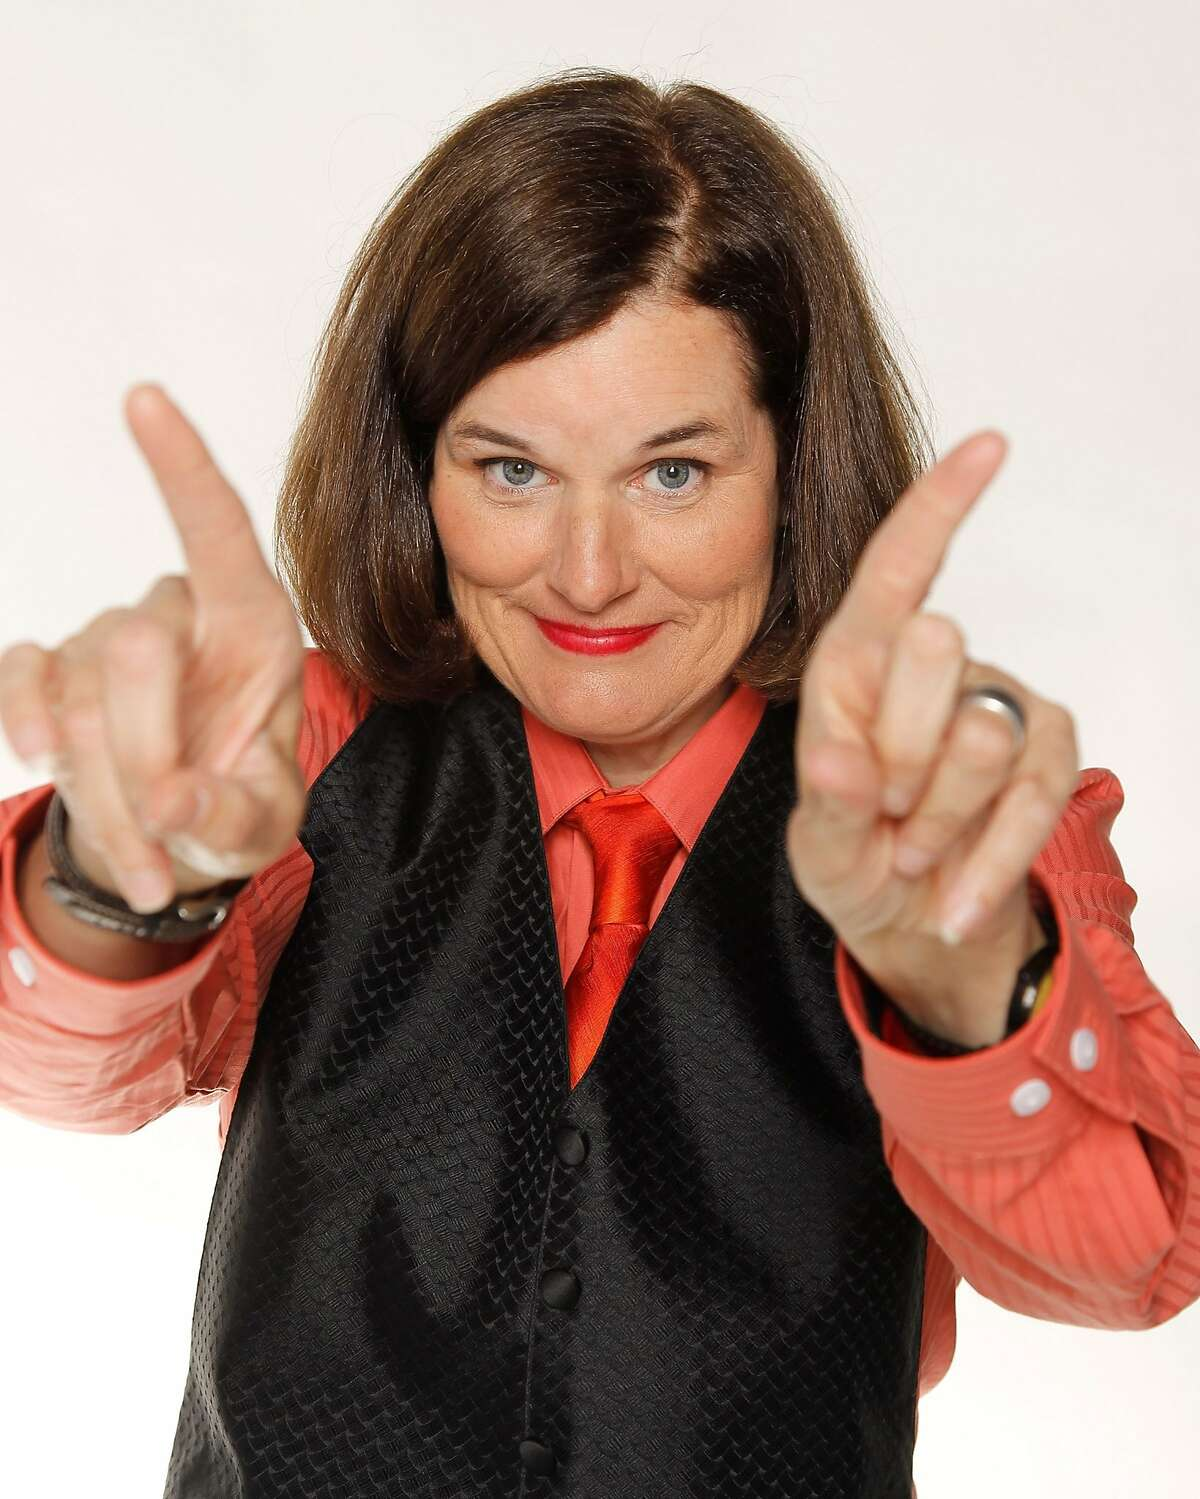 Comedian Paula Poundstone will take the stage at Foxwoods on Friday. Find out more.